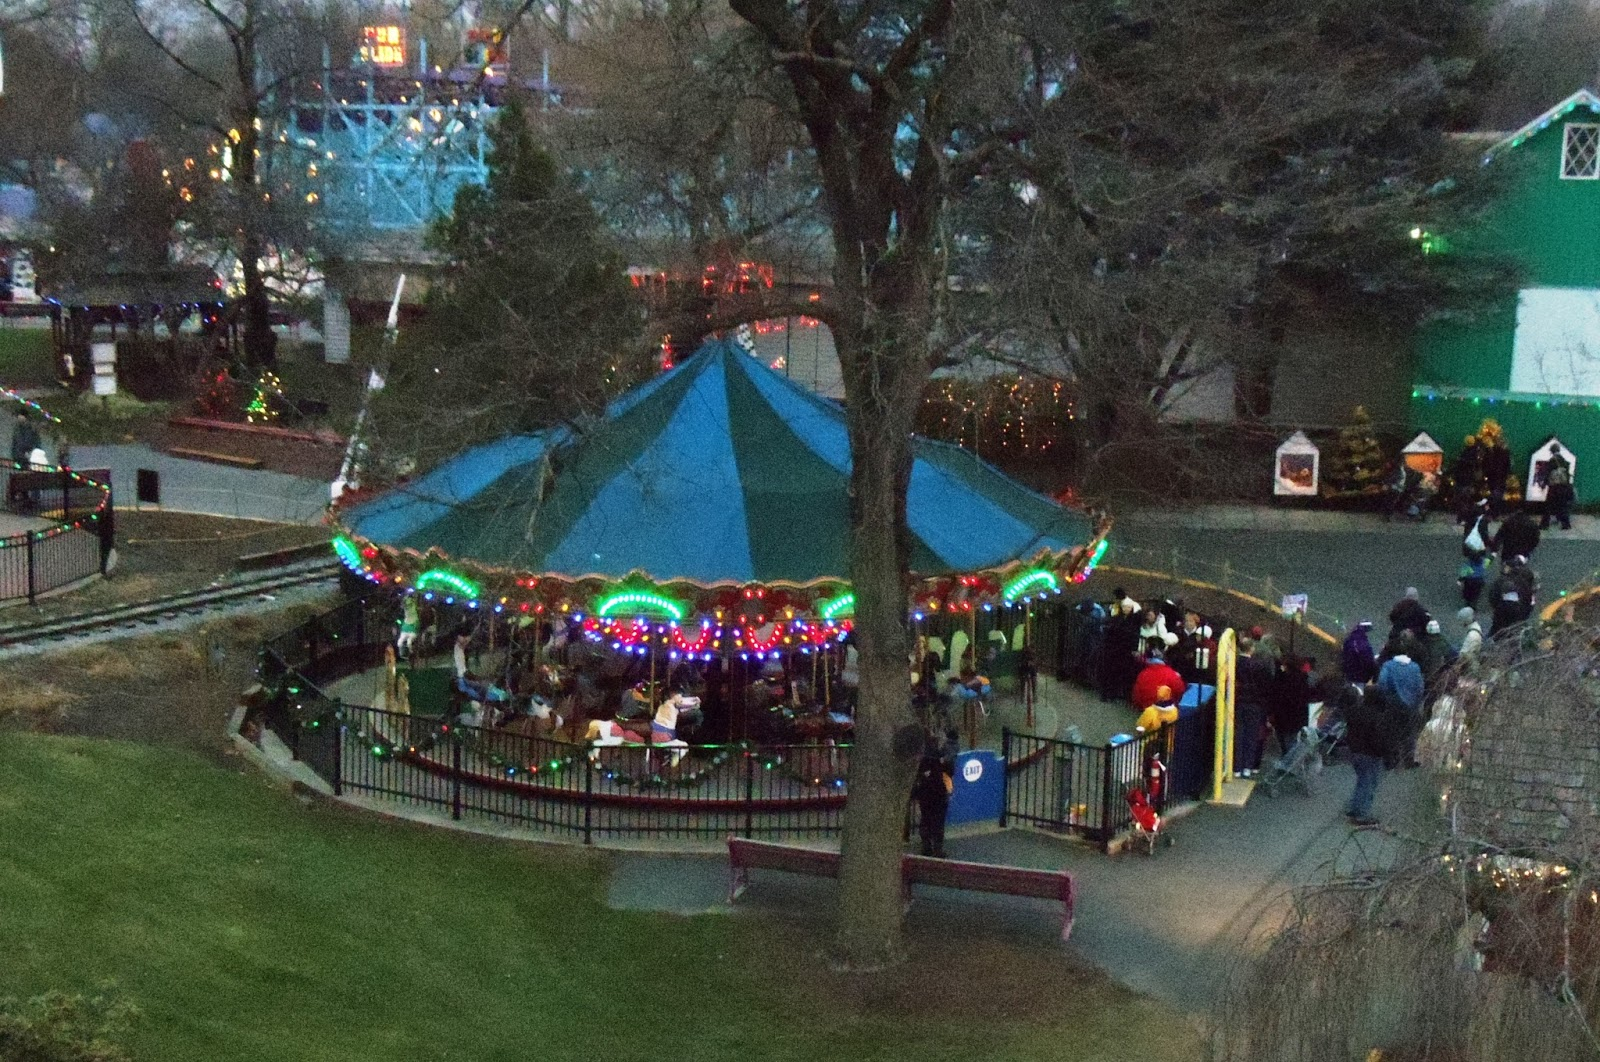 Frying Pan Farm Park Carousel